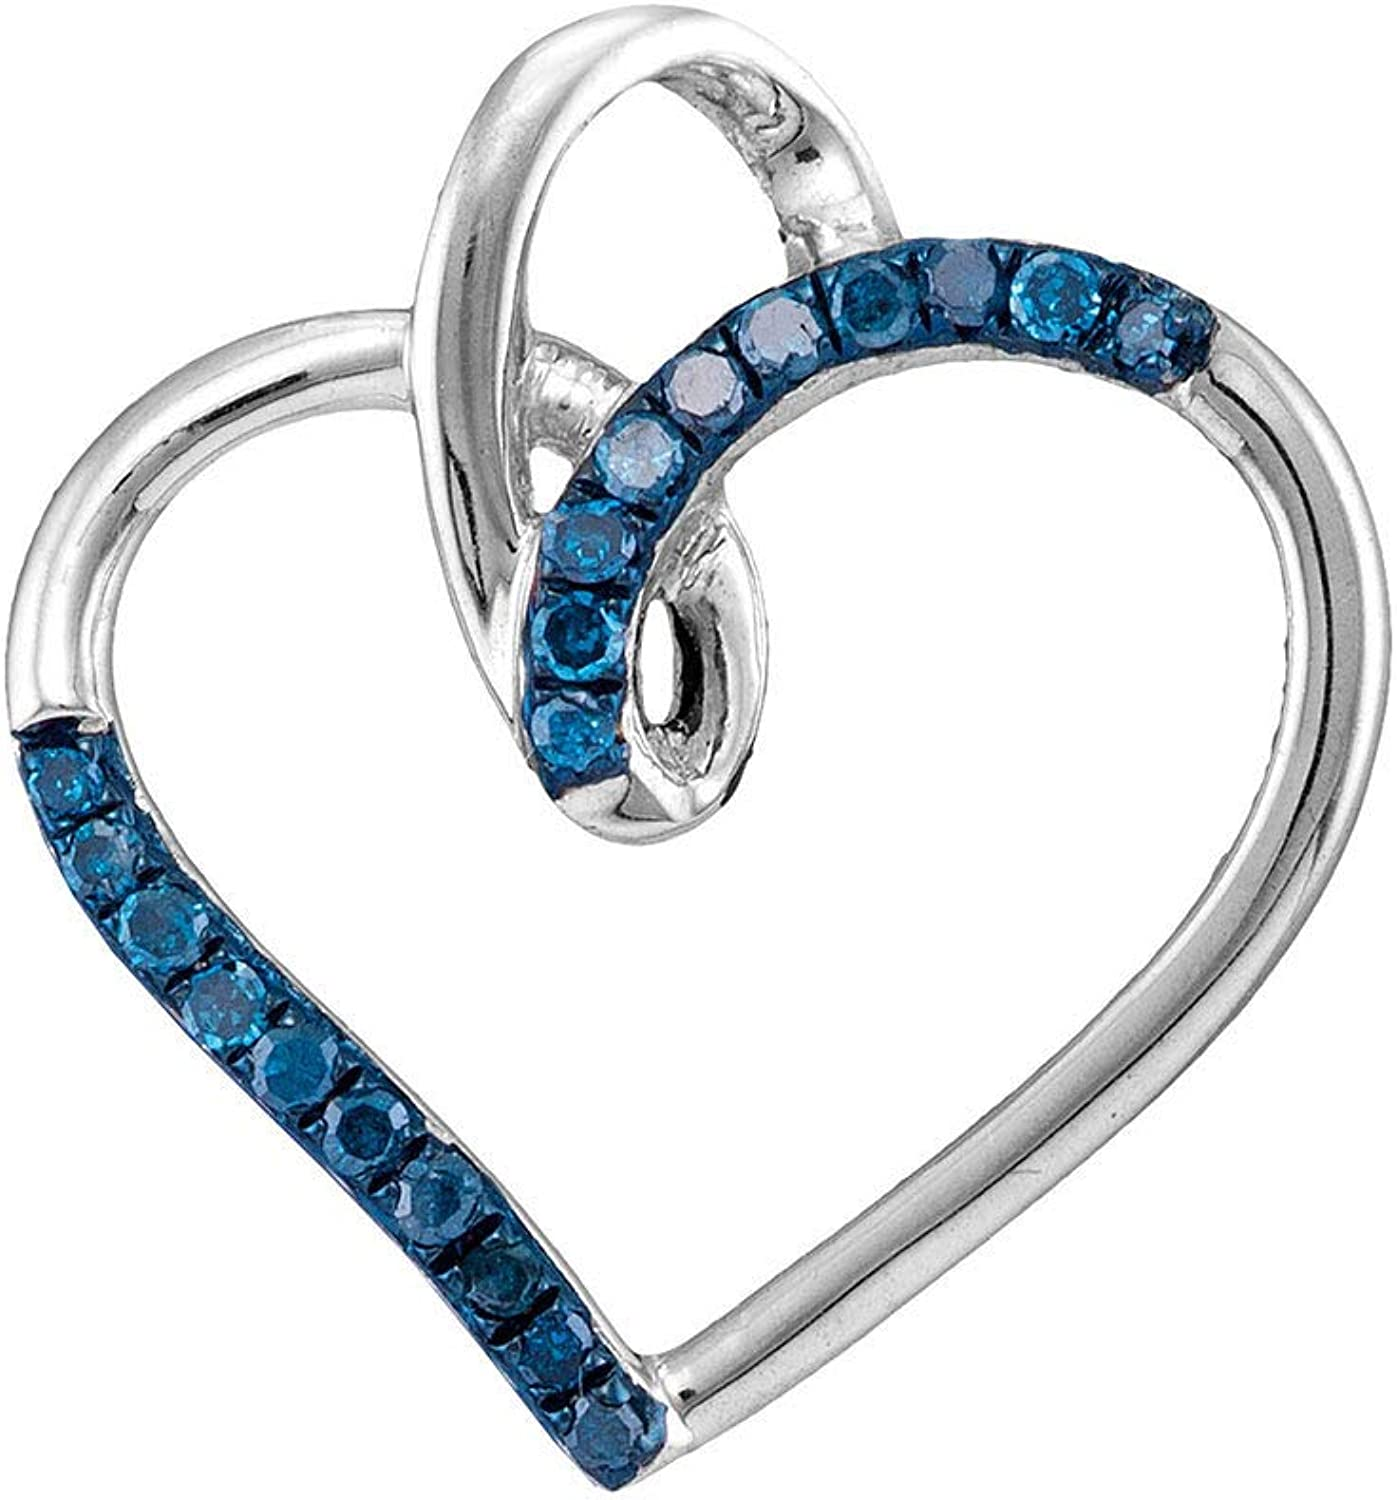 10kt White gold Womens Round bluee color Enhanced Diamond Heart Pendant 1 6 Cttw